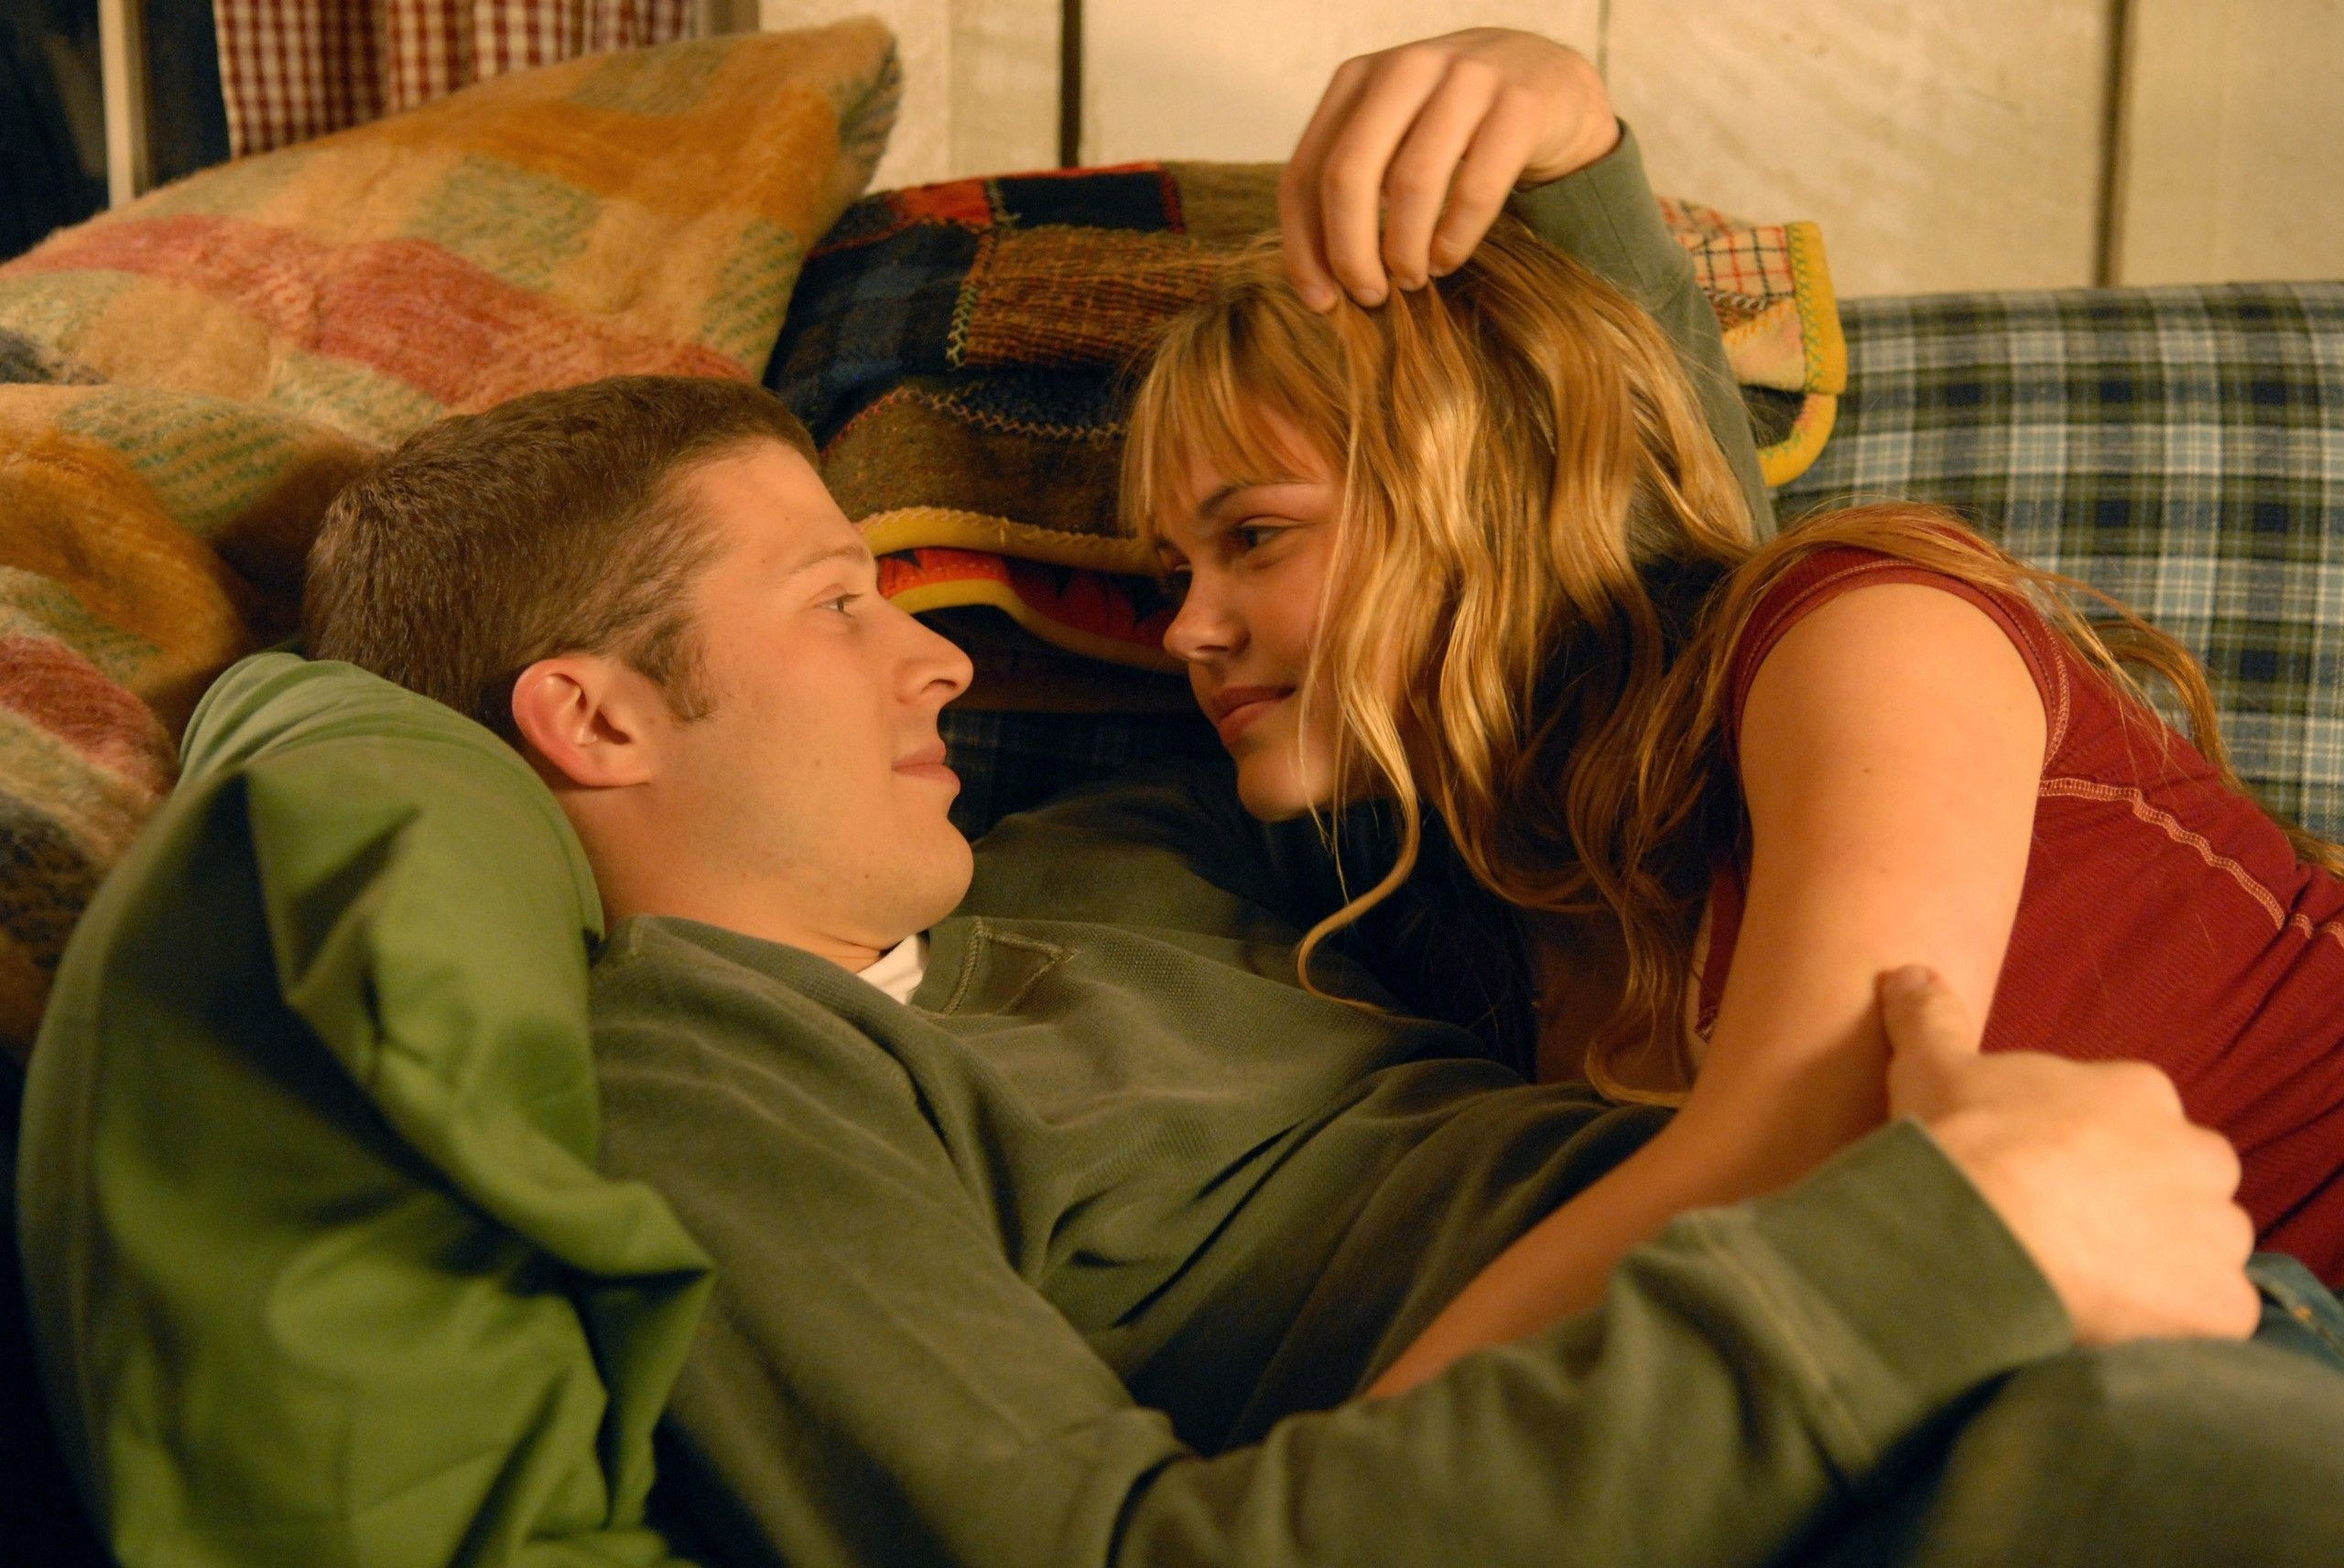 Matt Julie are my all time favorite couple Friday Night Lights